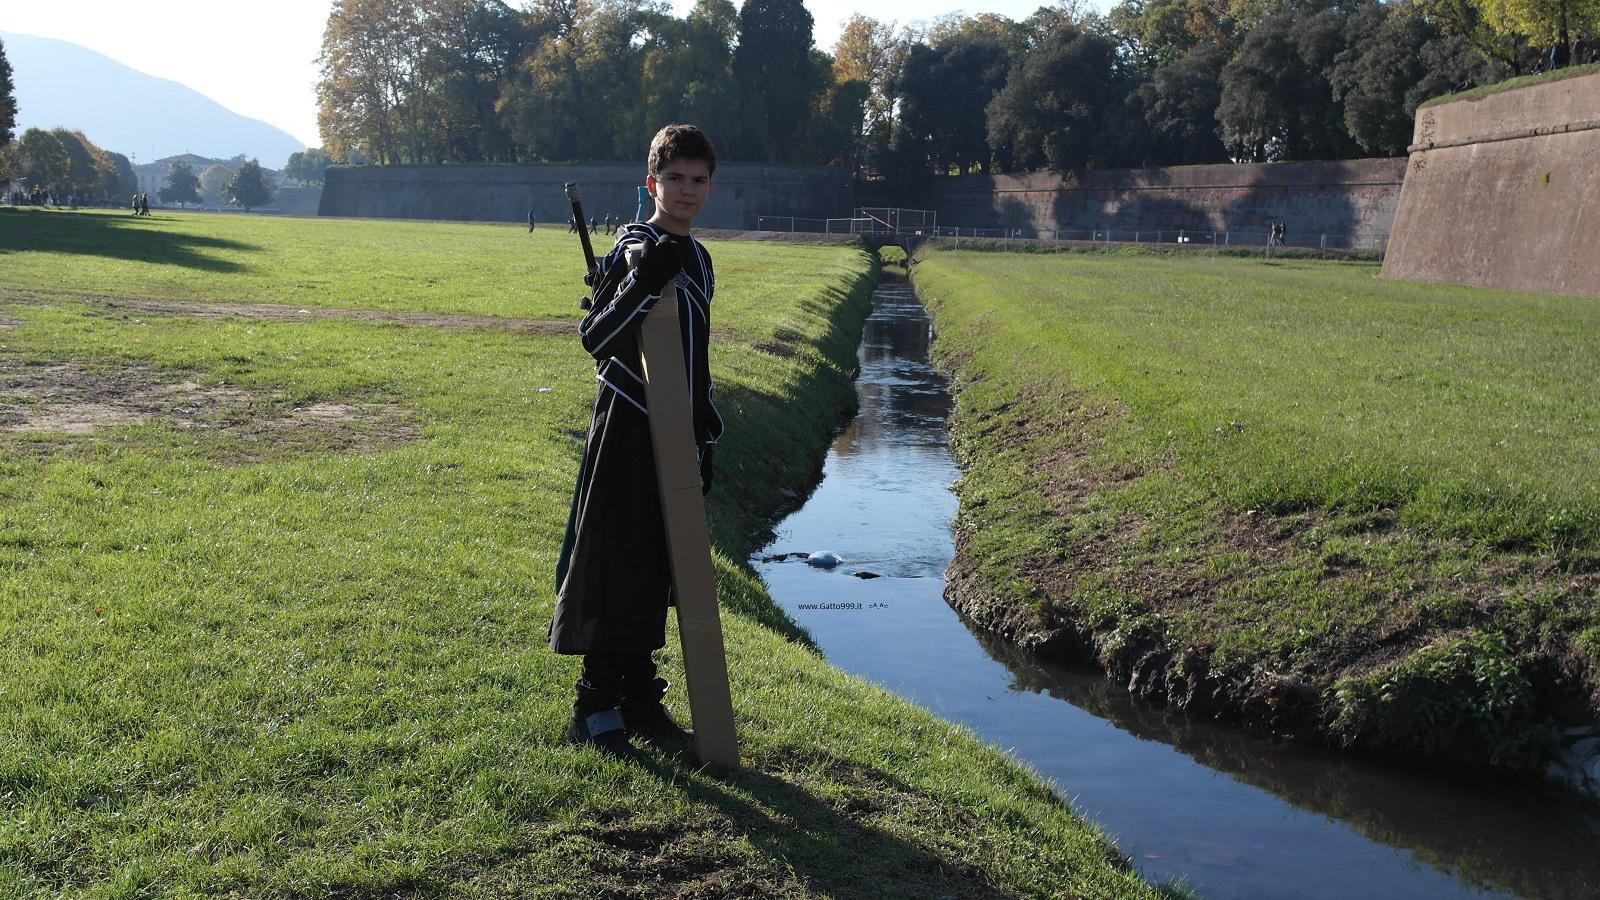 Lucca Comics and Games 2015 - Cosplay Kirito Sword Art Online   Lucca Comics and Games 2015 - Cosplay Kirito Sword Art Online